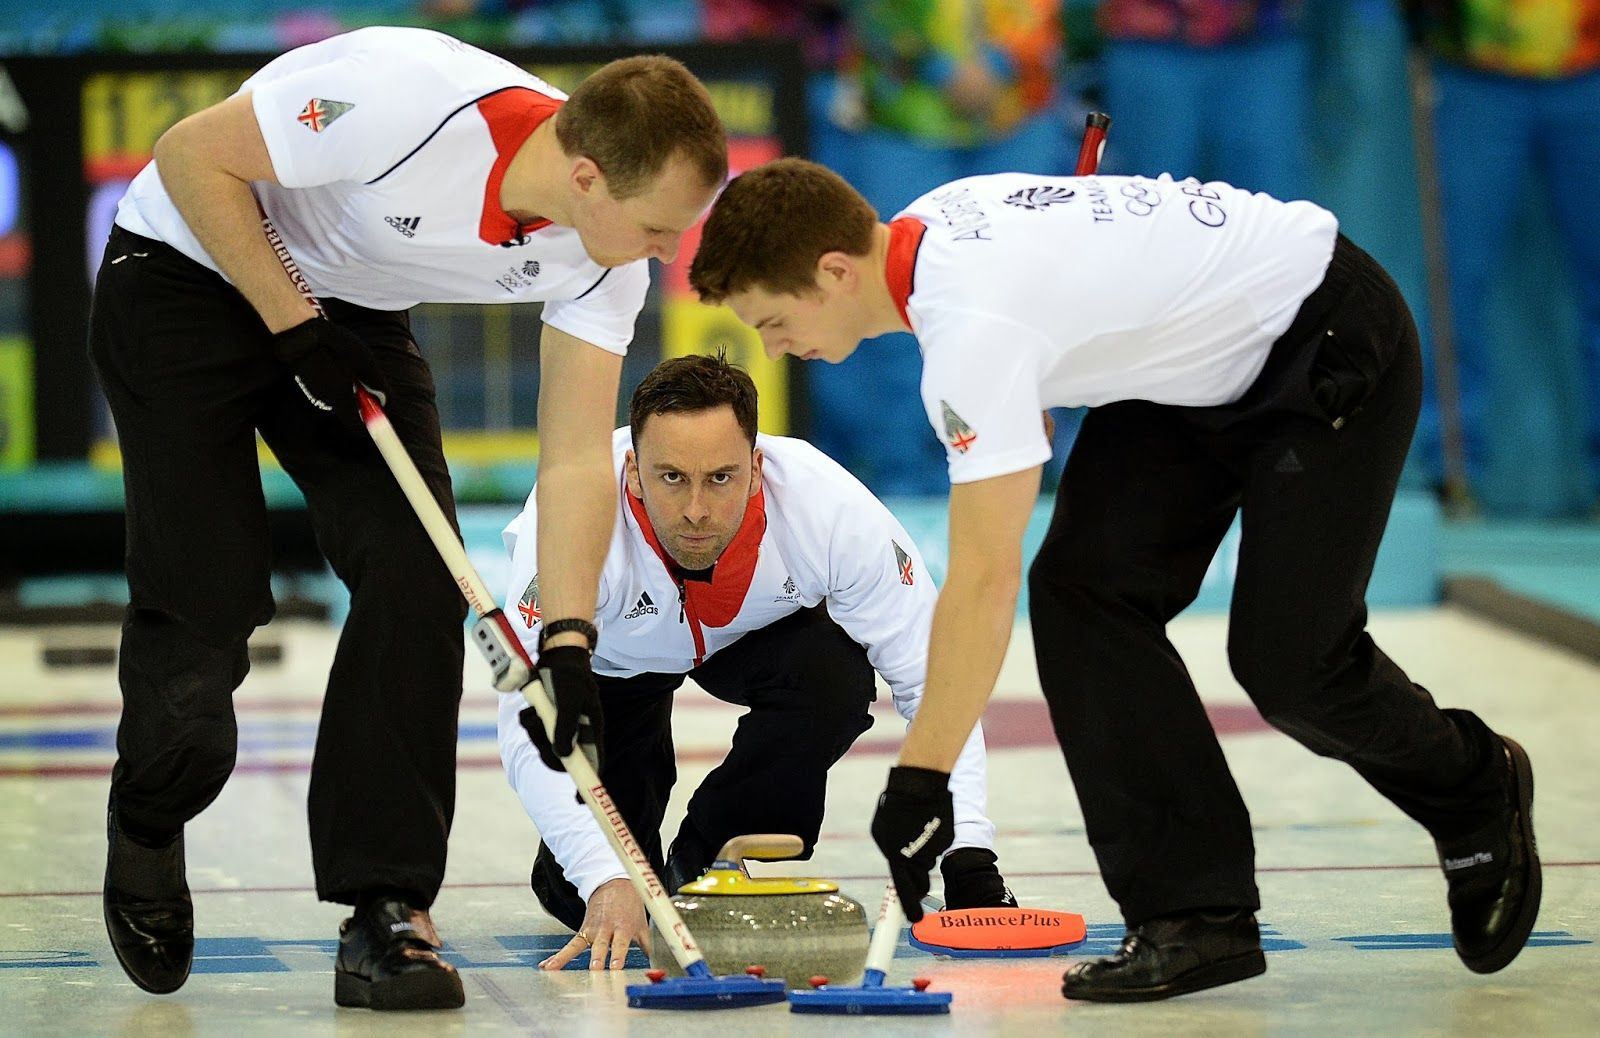 Sochi Olympics 2014 Men's Curling Matches in Pictures